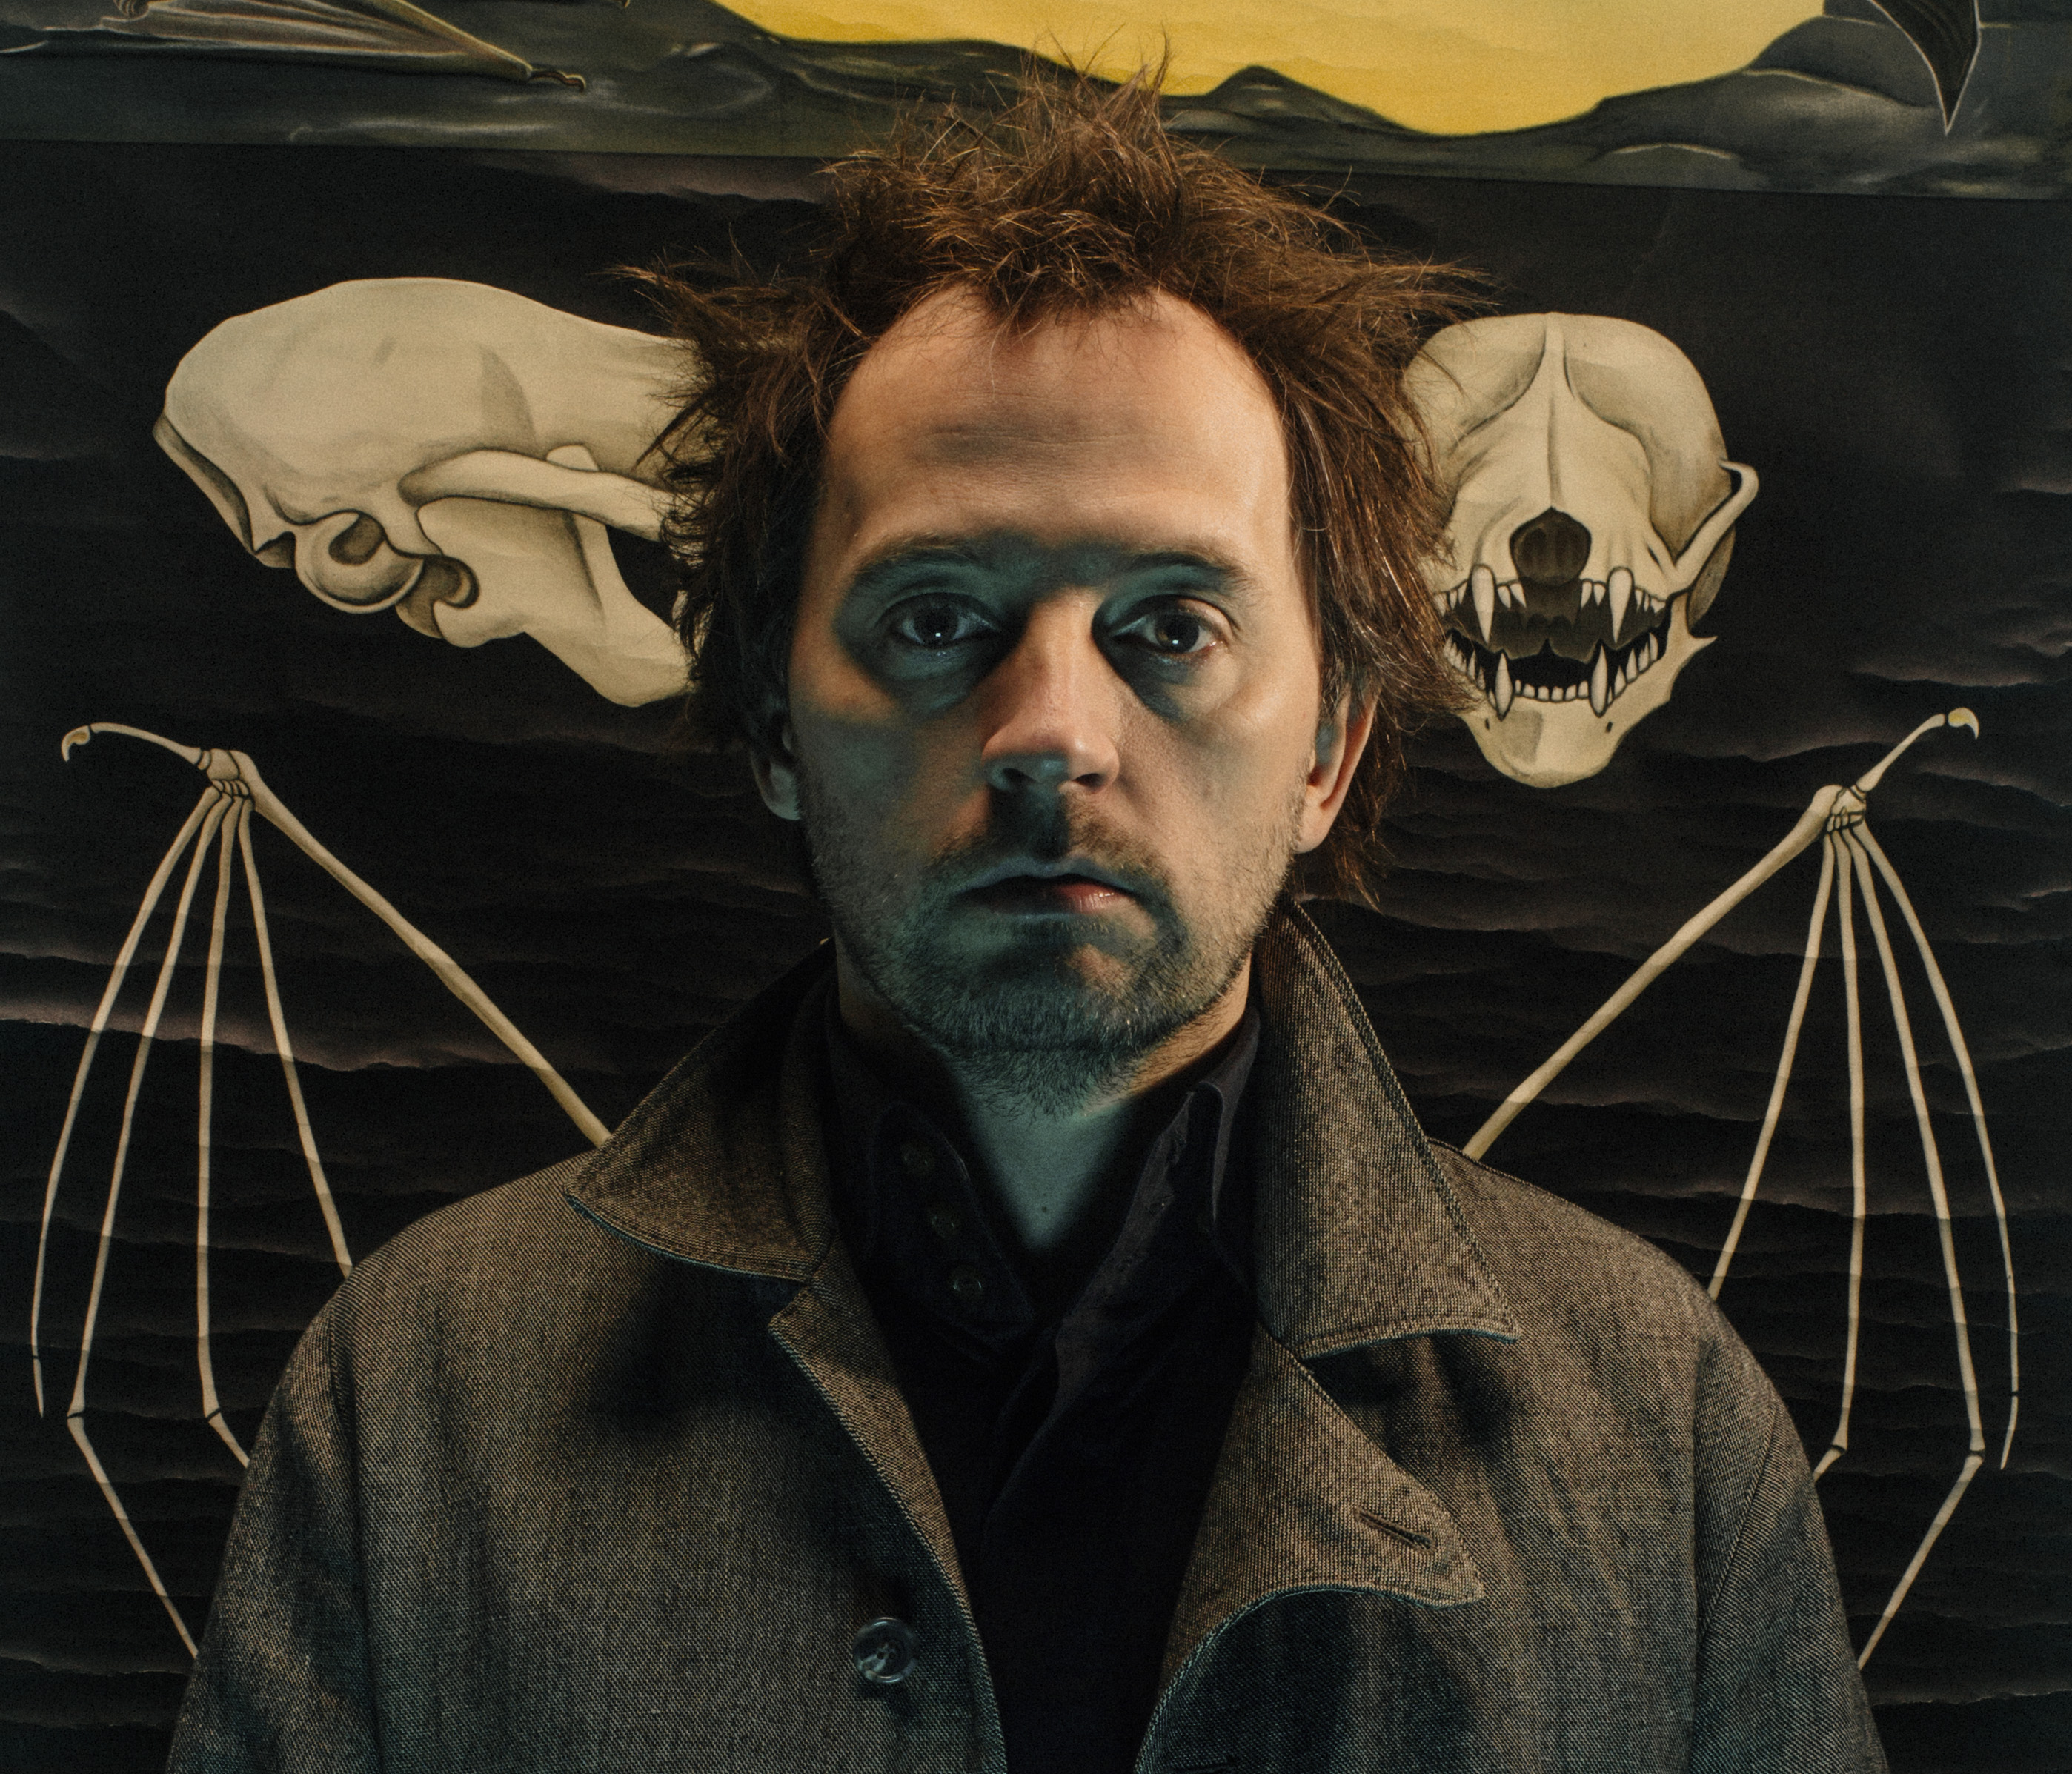 Squarepusher announces Damogen Furies LP, download a glitchy new track